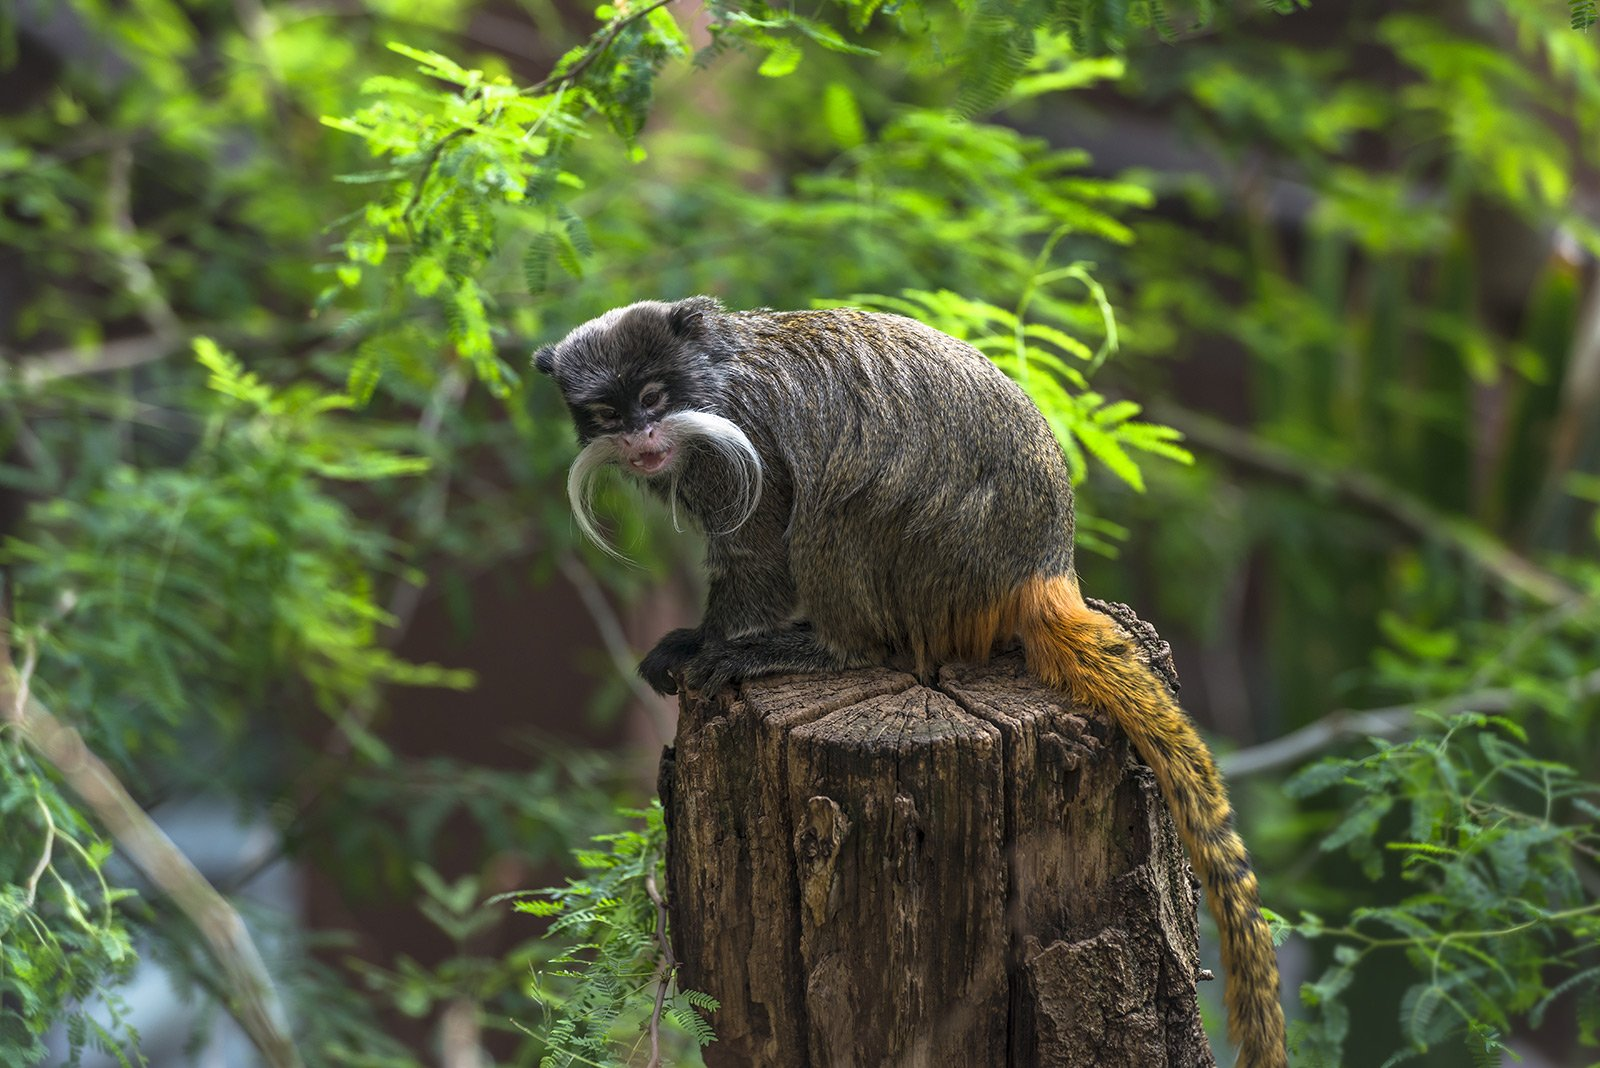 How to see tamarins in Rio de Janeiro